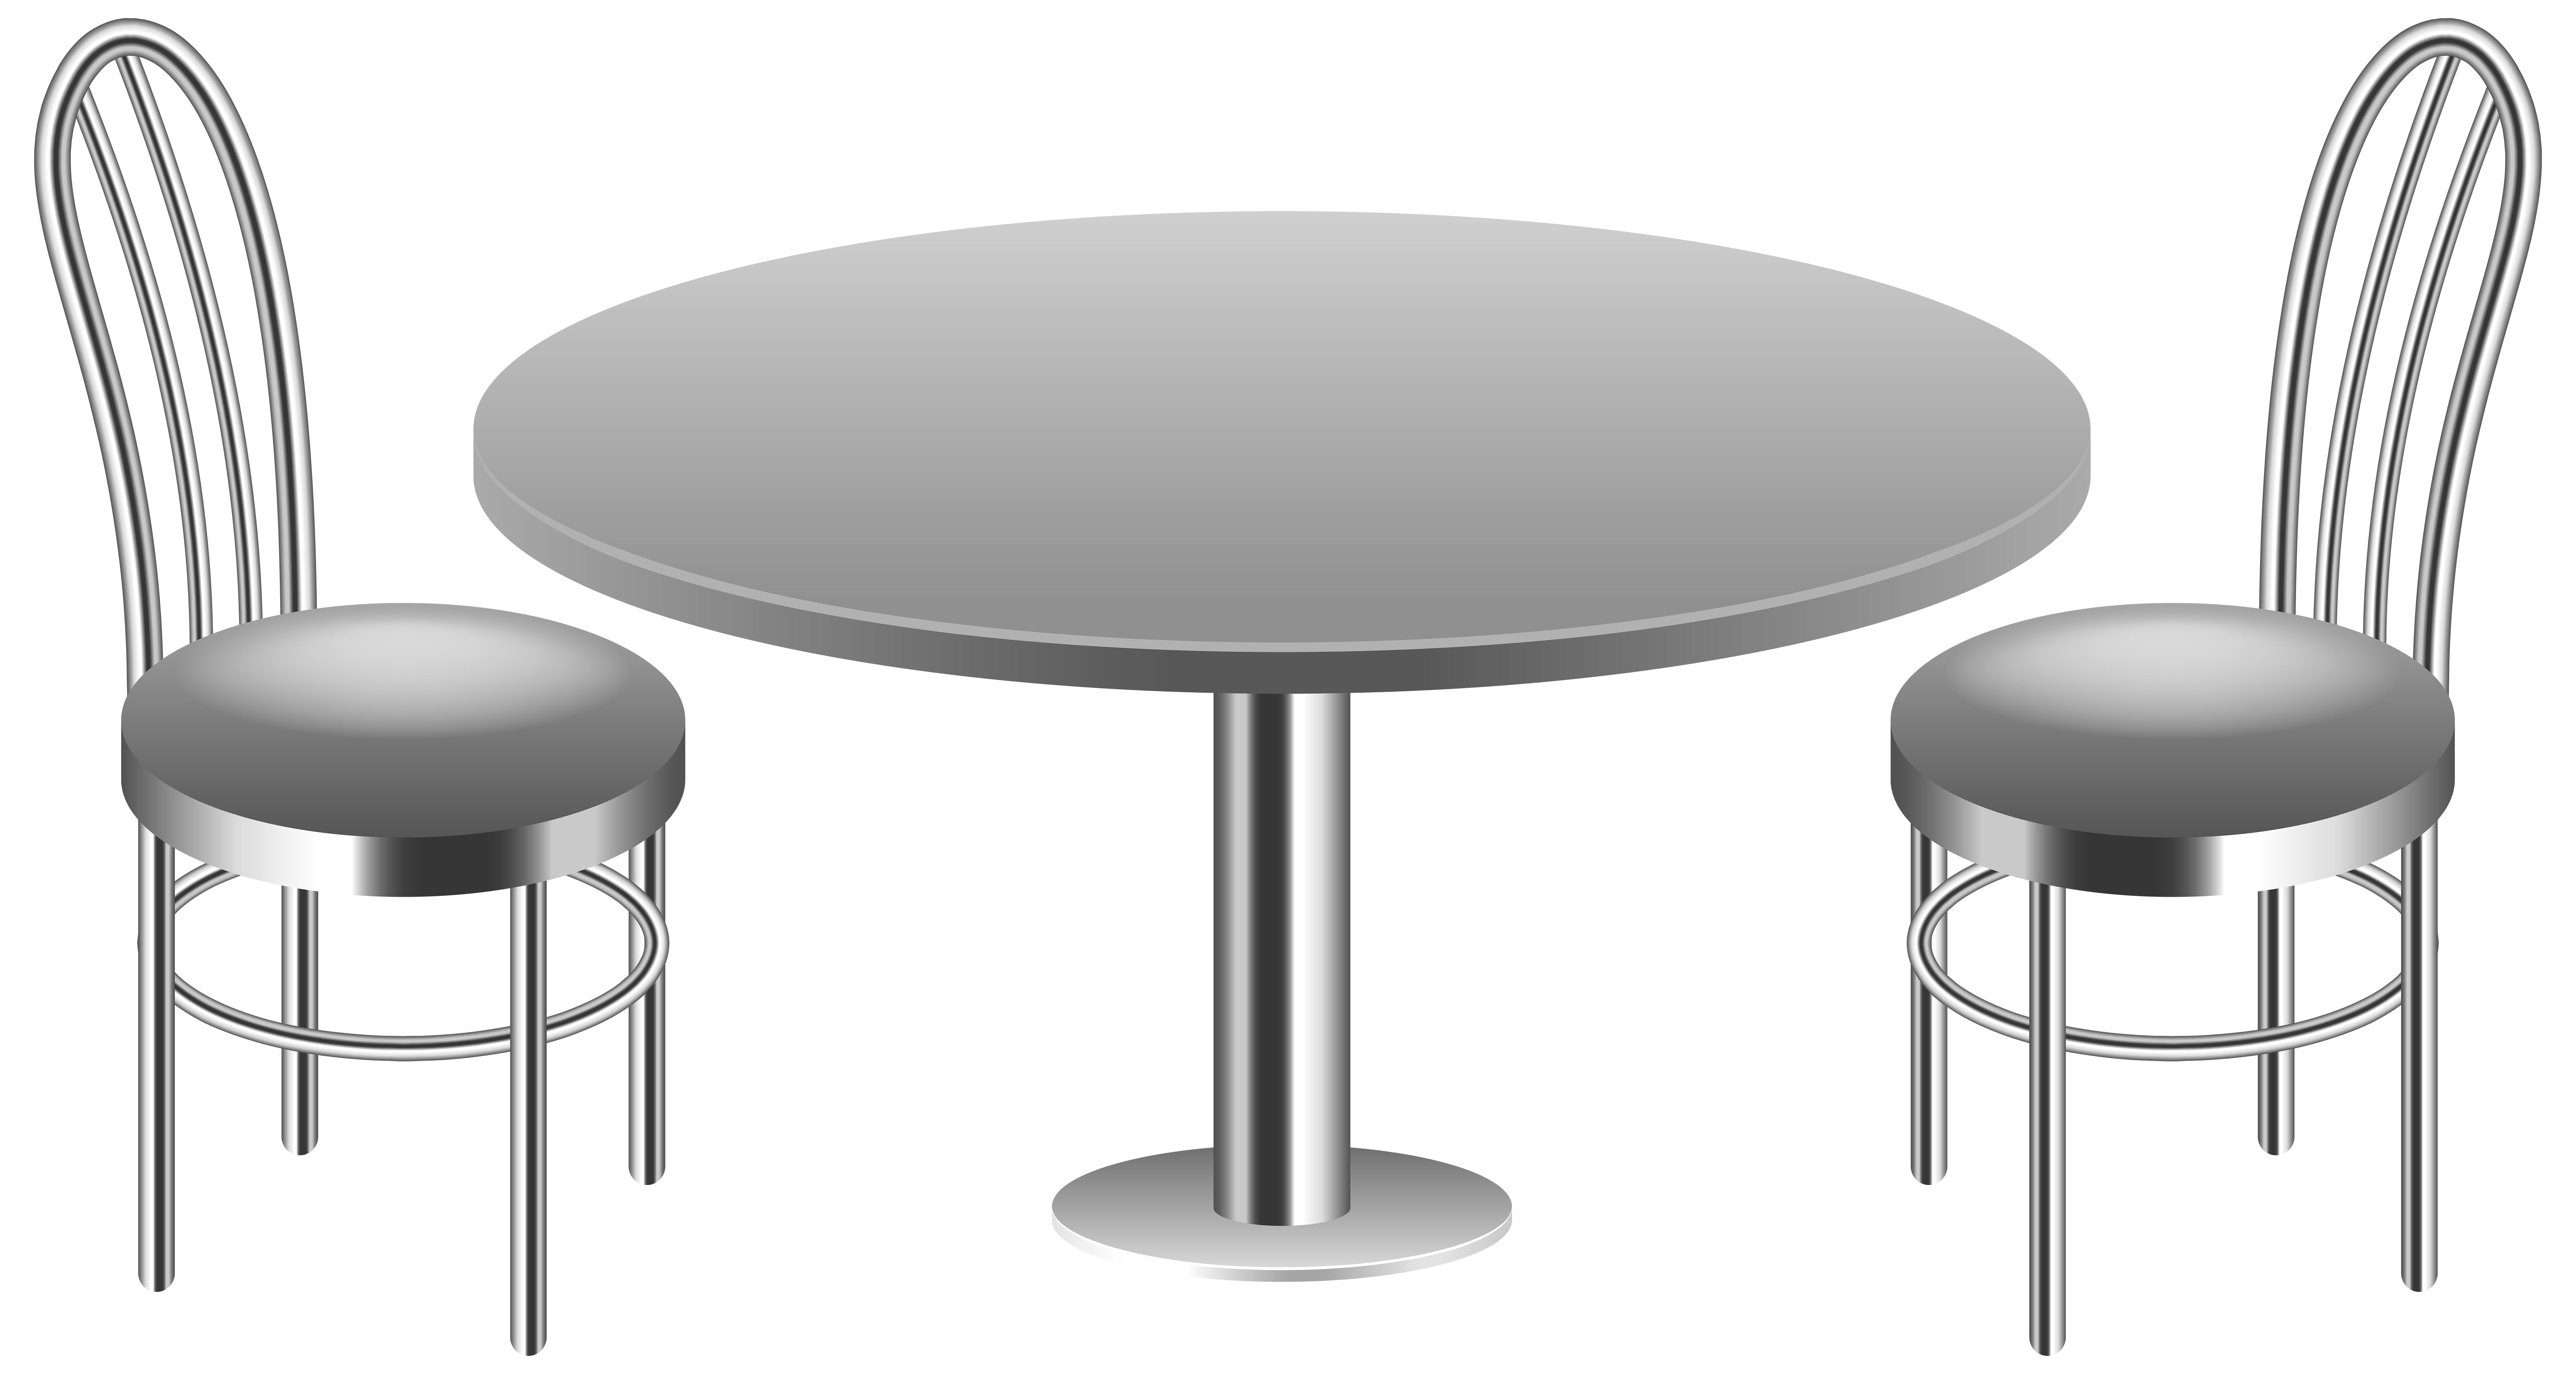 Table with Chairs Transparent PNG Clip Art Image | Gallery ... clip art download